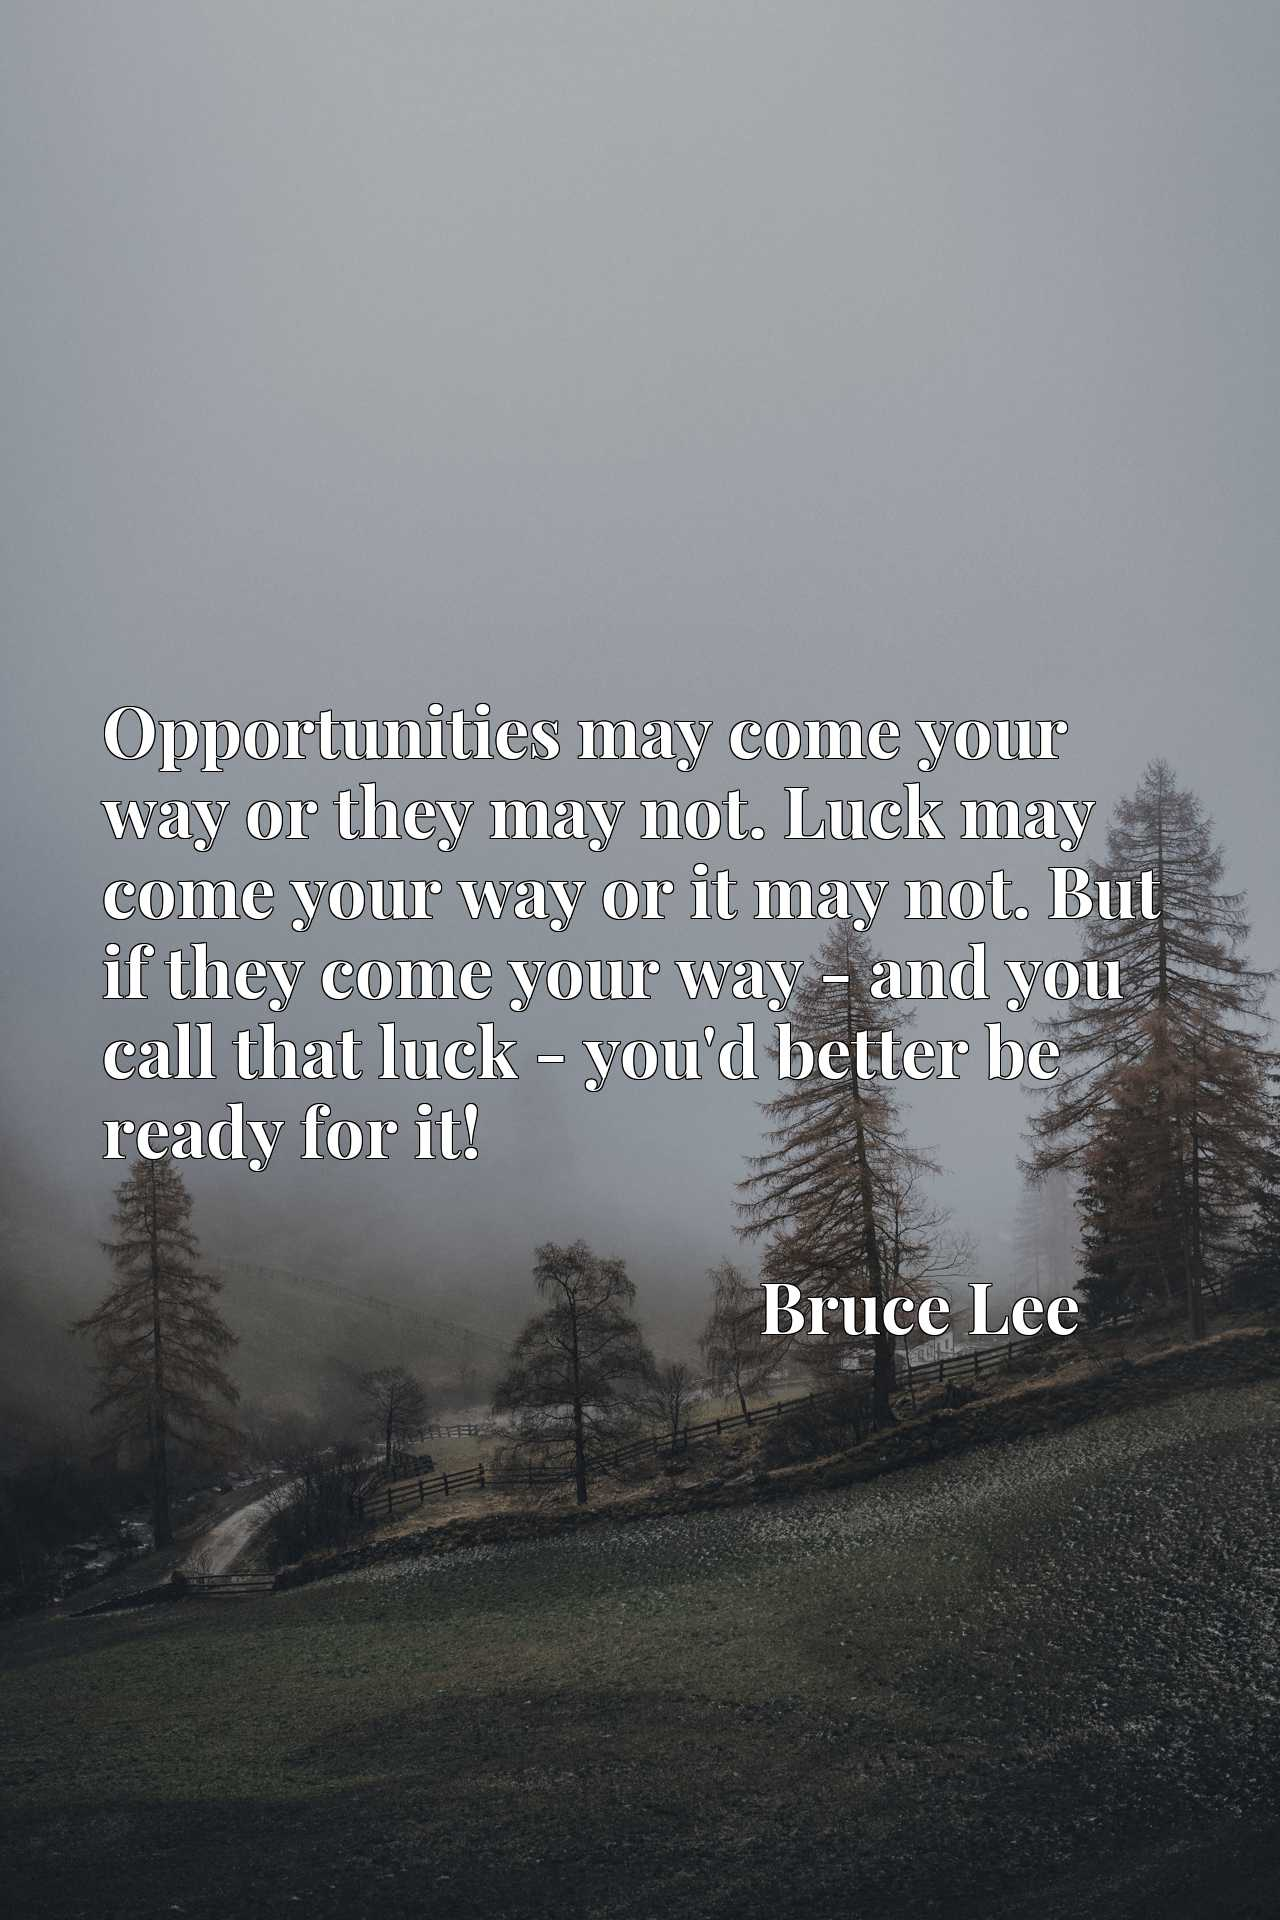 Opportunities may come your way or they may not. Luck may come your way or it may not. But if they come your way - and you call that luck - you'd better be ready for it!